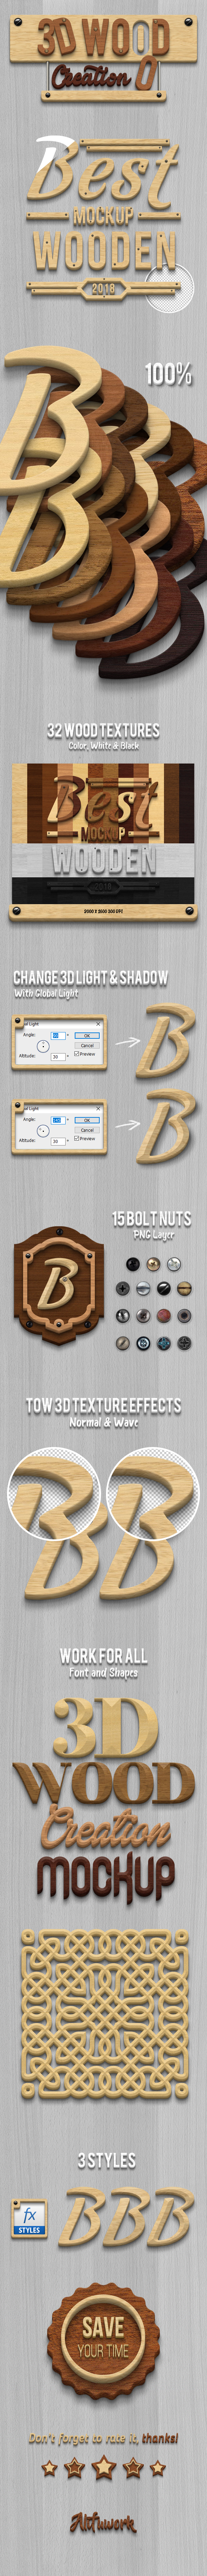 3D Wood Creation Mockup - Text Effects Styles